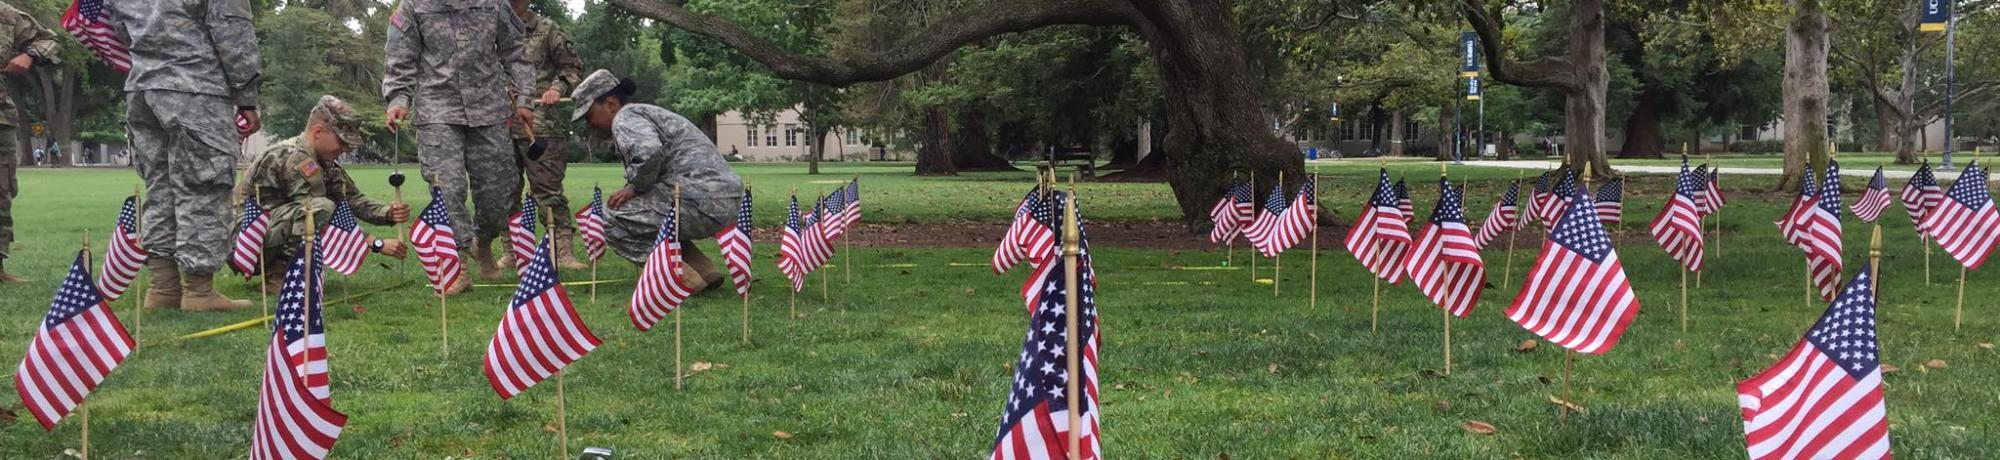 Students placing flags on the quad